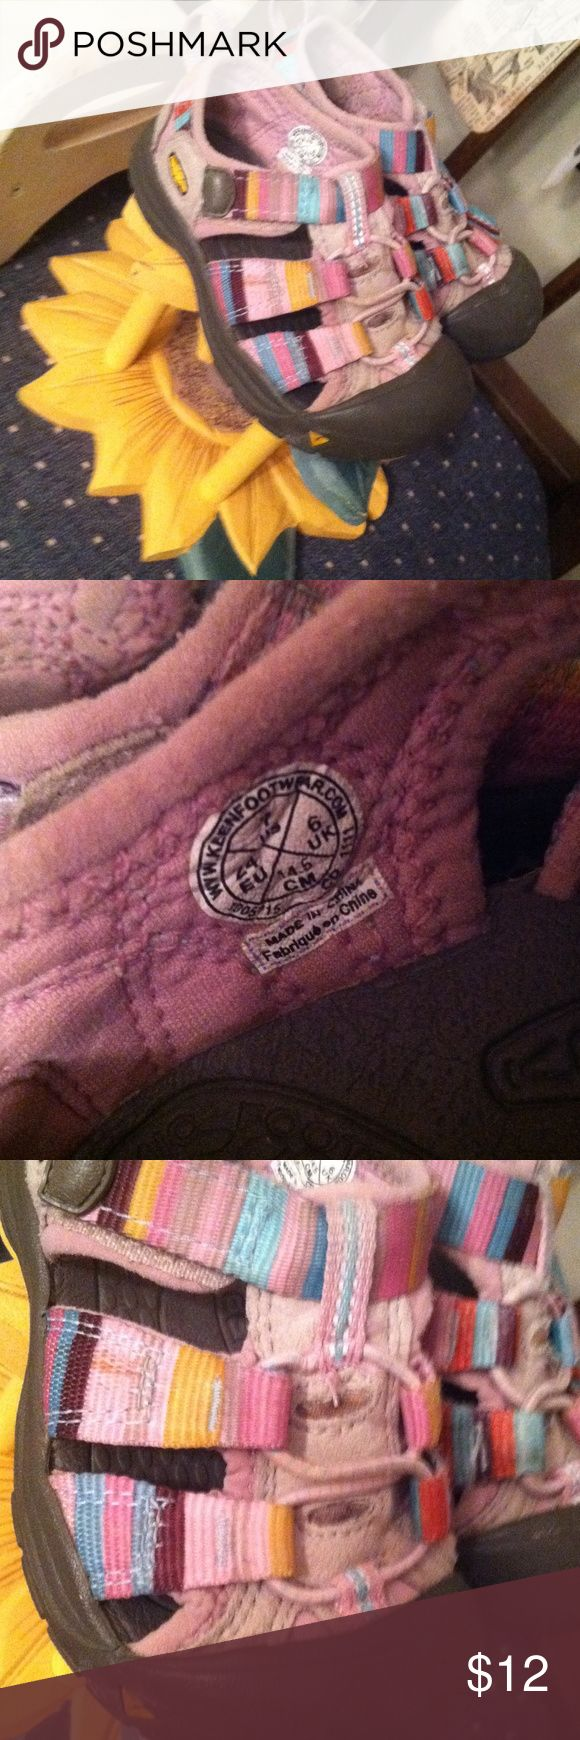 Keen sz 7 Toddler girl water shoes. Great shoes fantastic price Keen Shoes Water Shoes